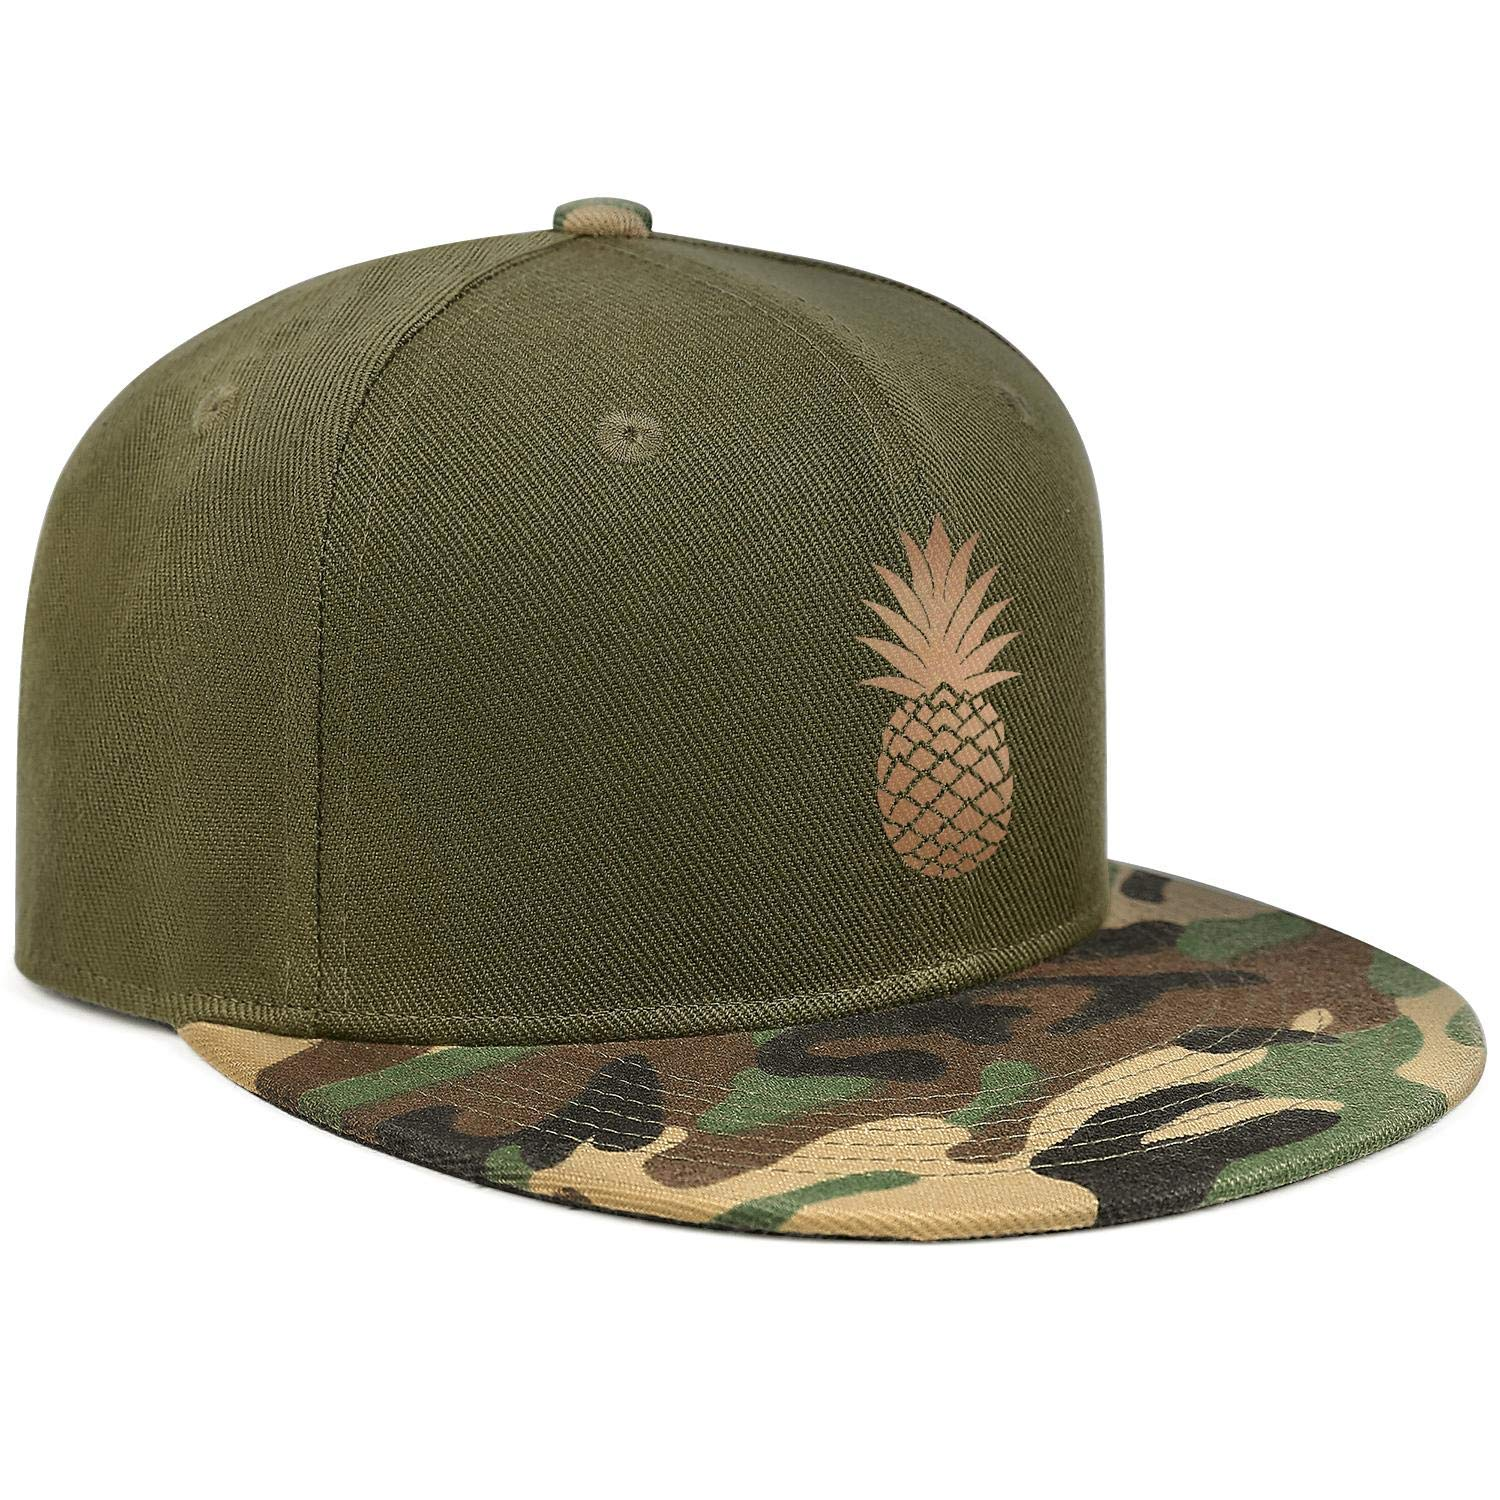 Gold Pineapple Decor Art Unisex Baseball Cap Ultra Thin Sport Hats Adjustable Trucker Caps Dad-Hat